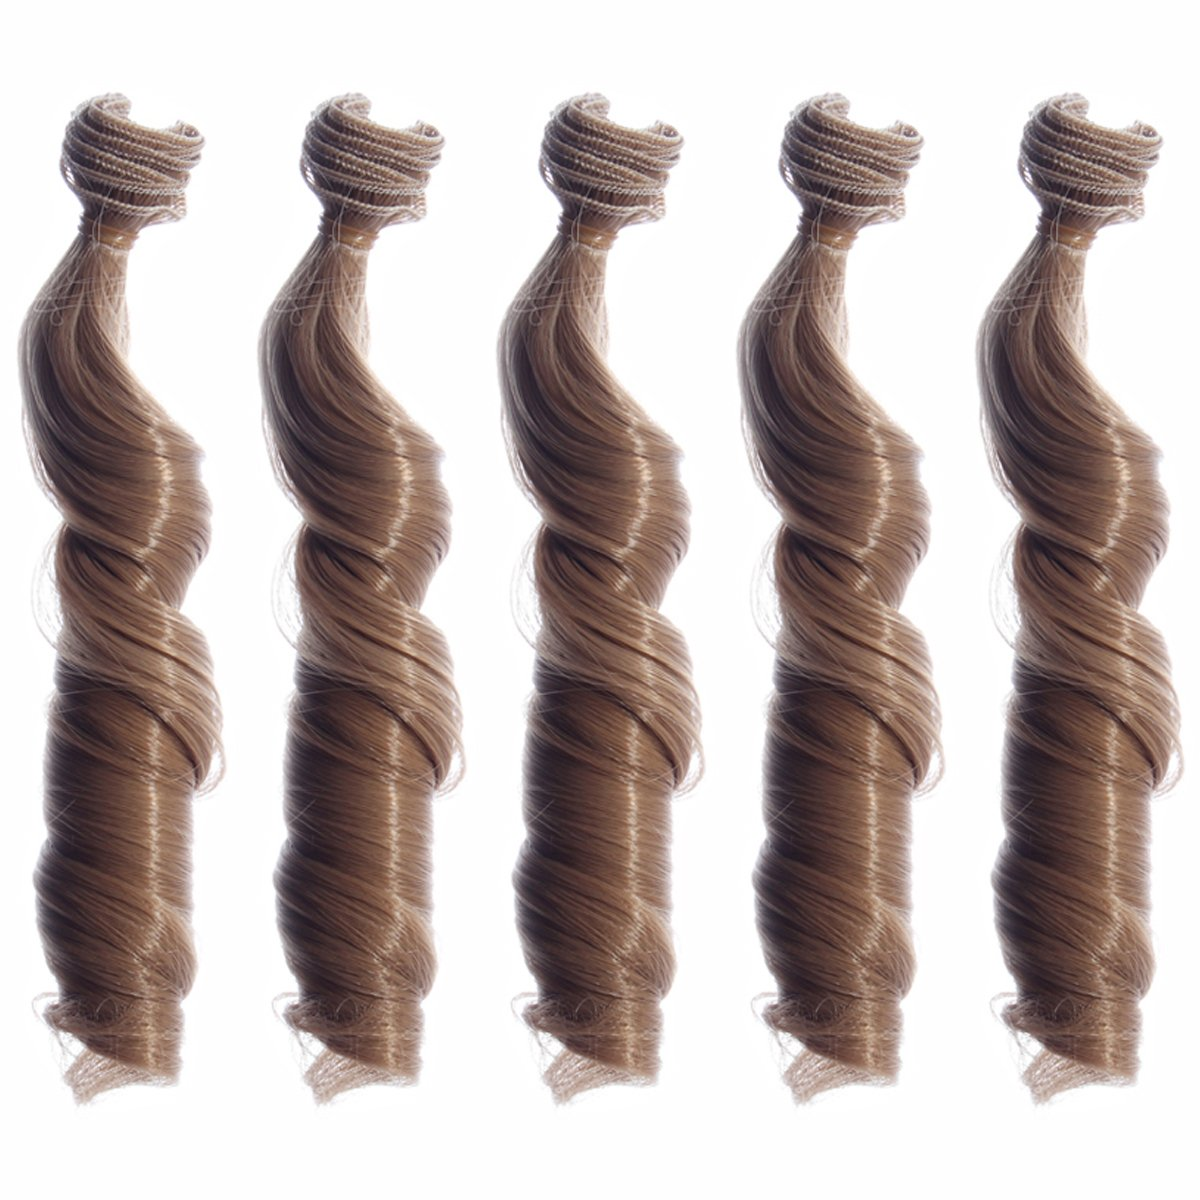 5pcs/lot,New Arrival 5.9039.37''Heat Resistant Spiral Curly Synthetic Hair Weft for Handcraft DIY Doll Wig